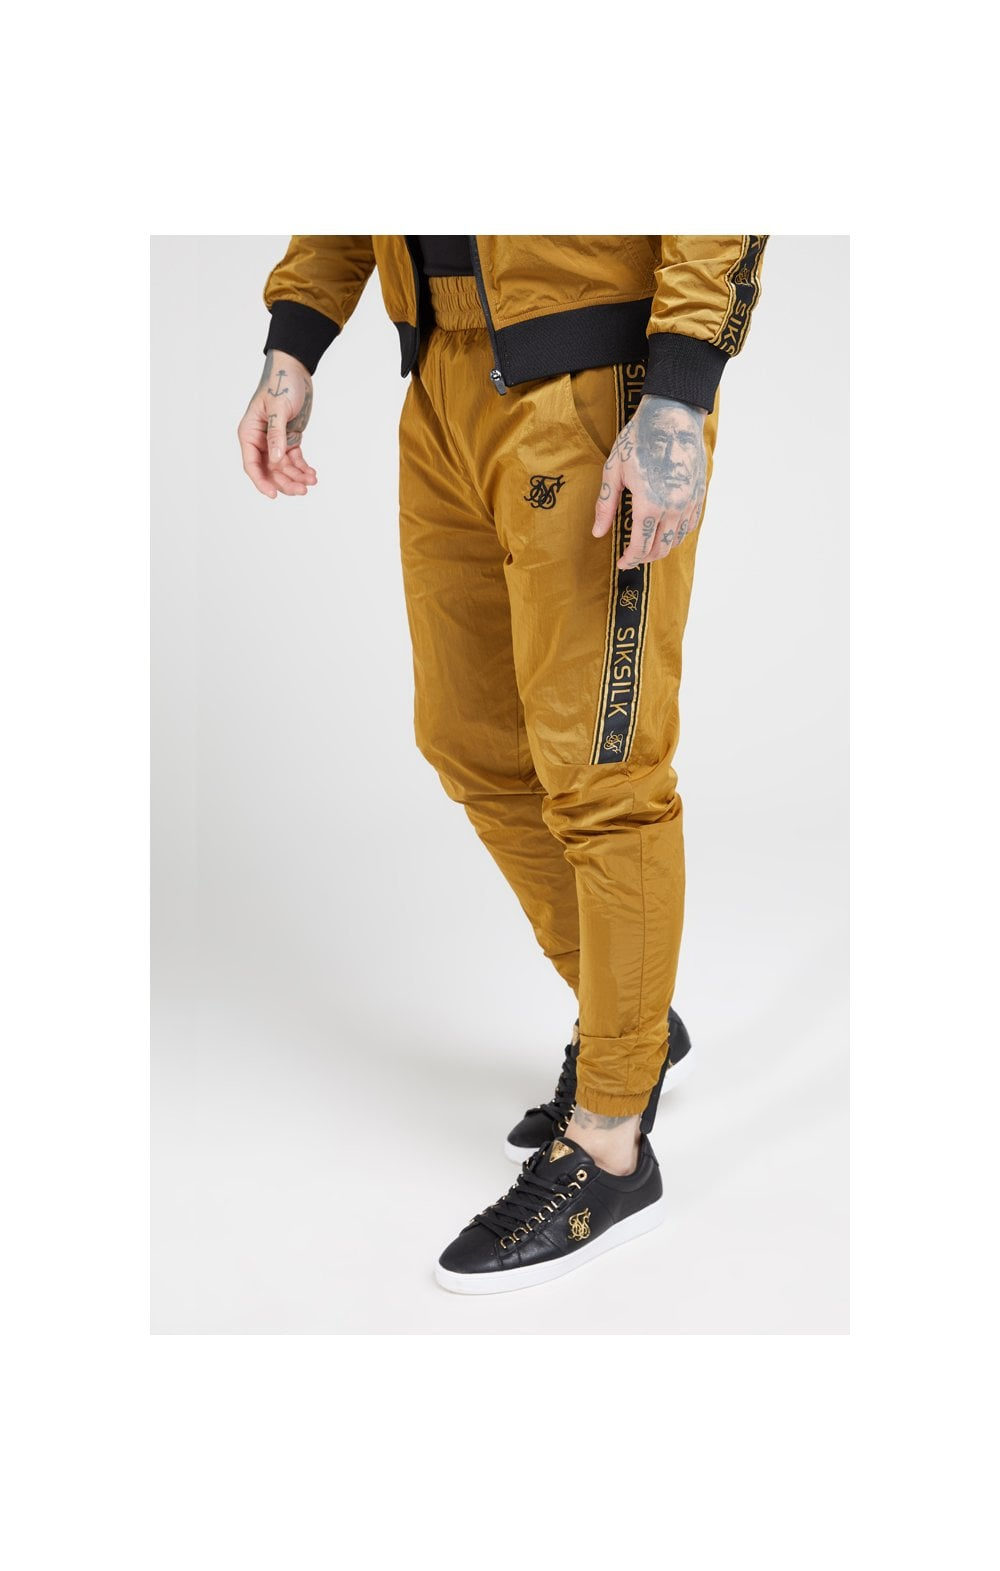 Load image into Gallery viewer, SikSilk Crushed Nylon Taped Joggers – Golden Mustard (1)